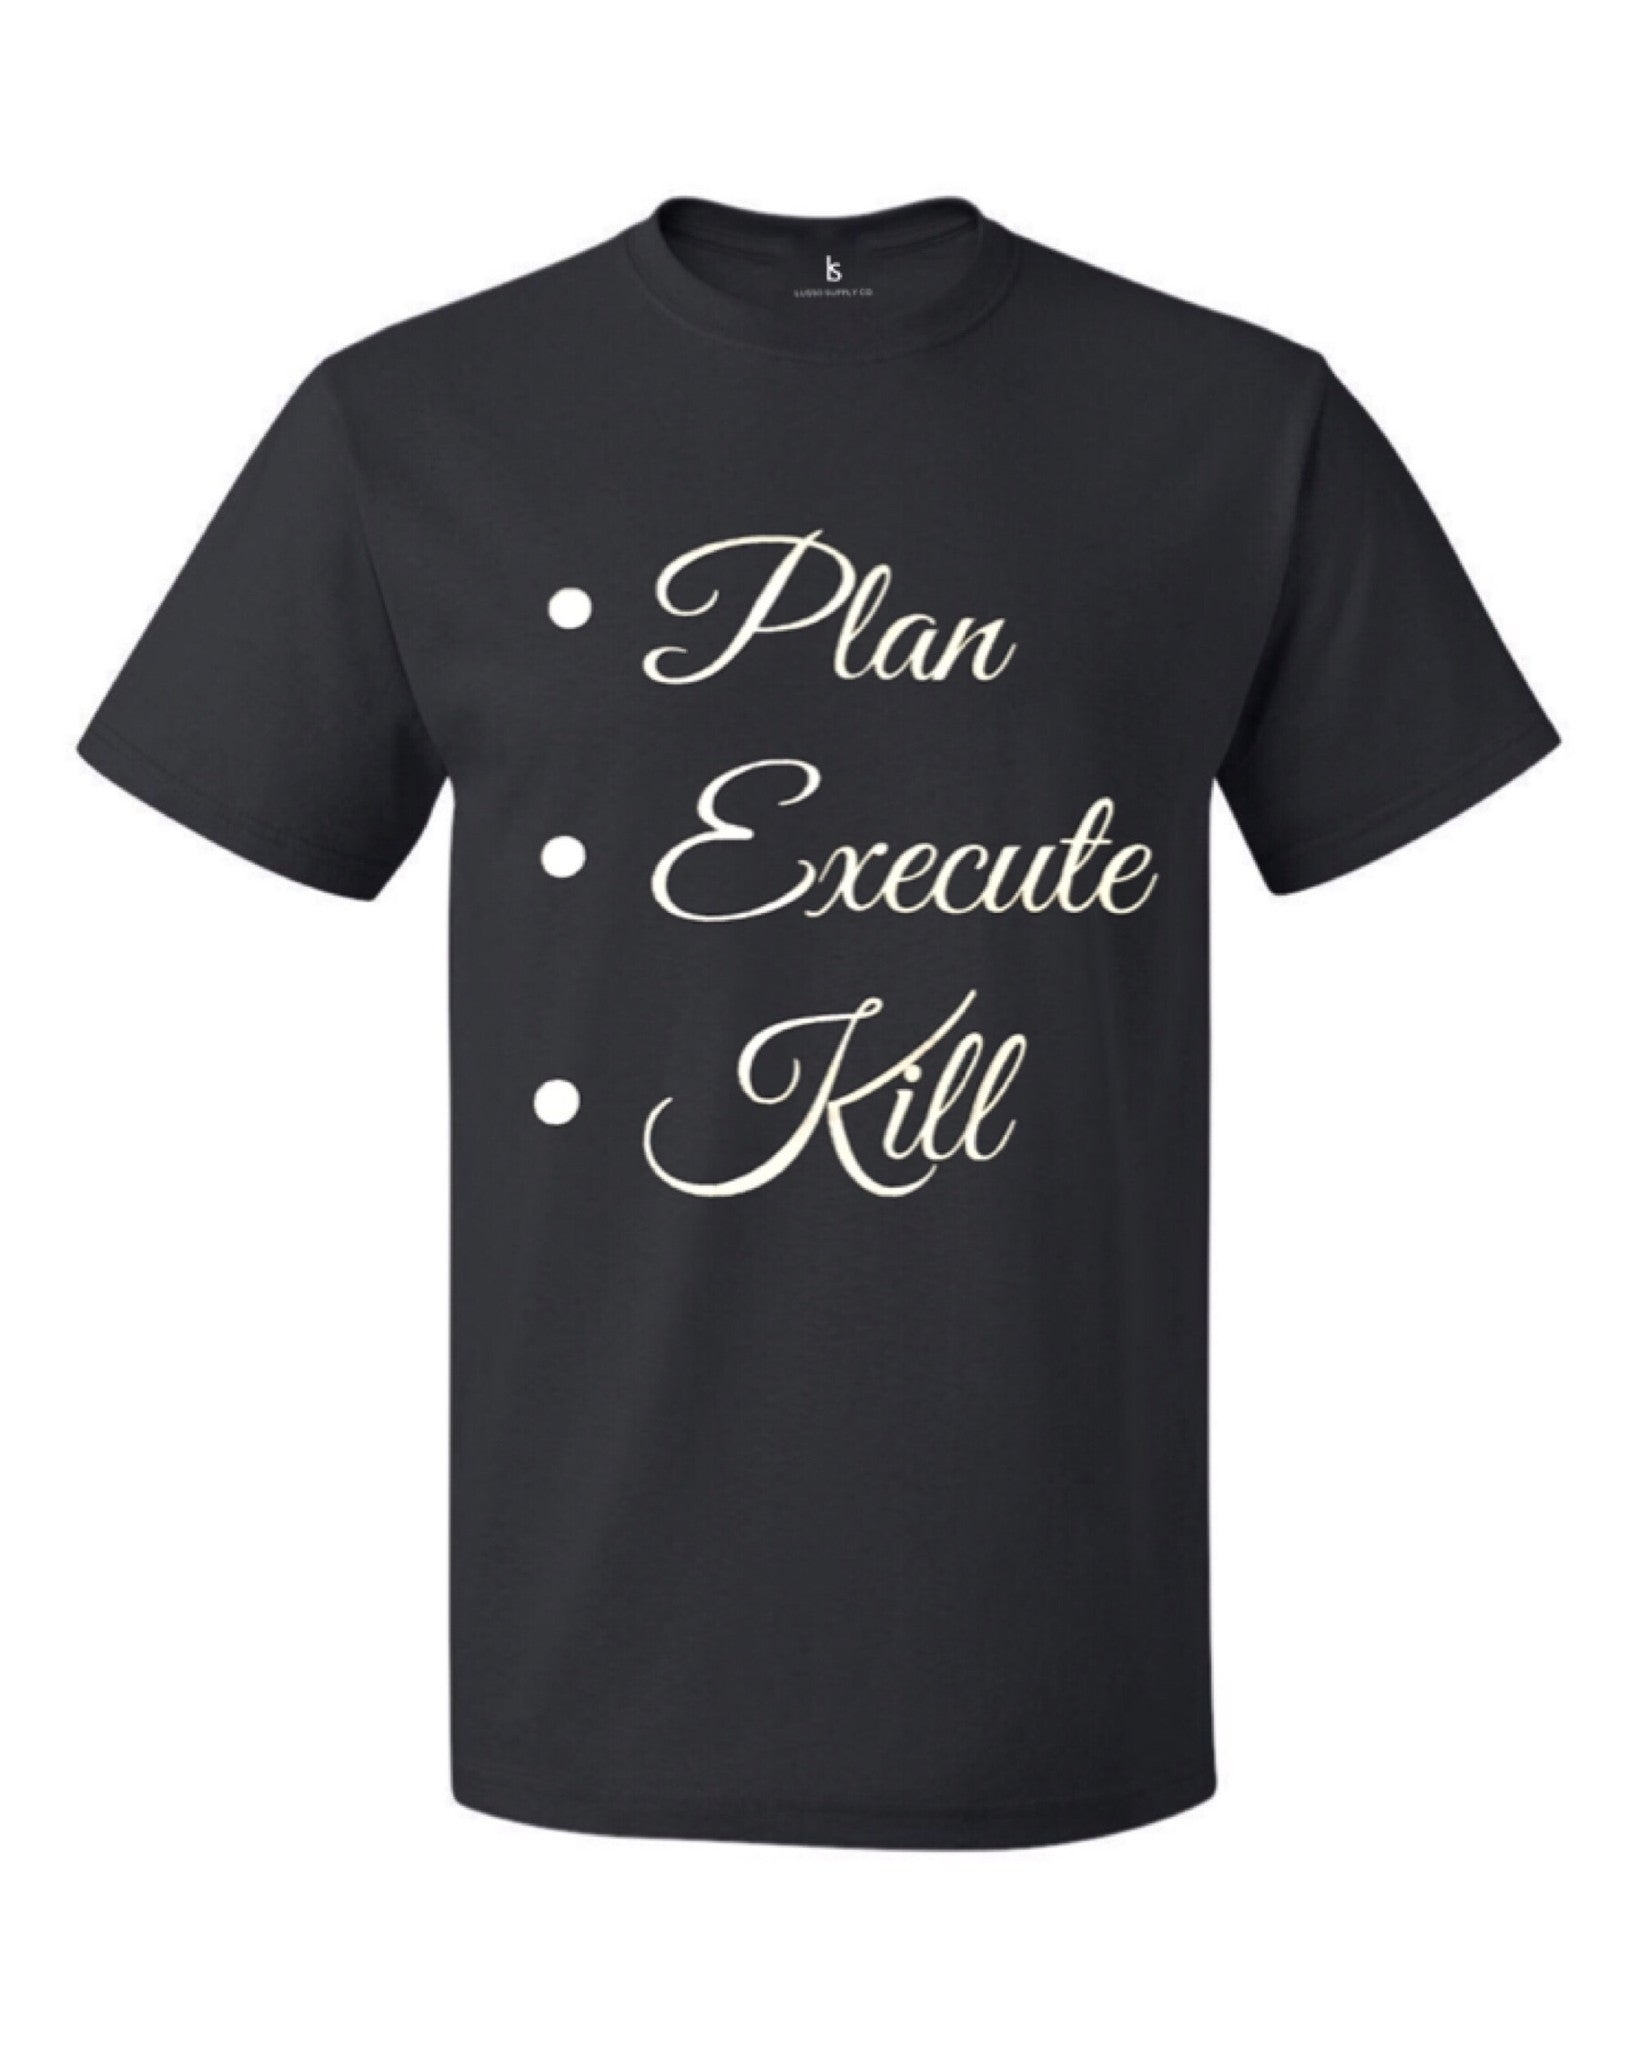 Plan Execute Kill